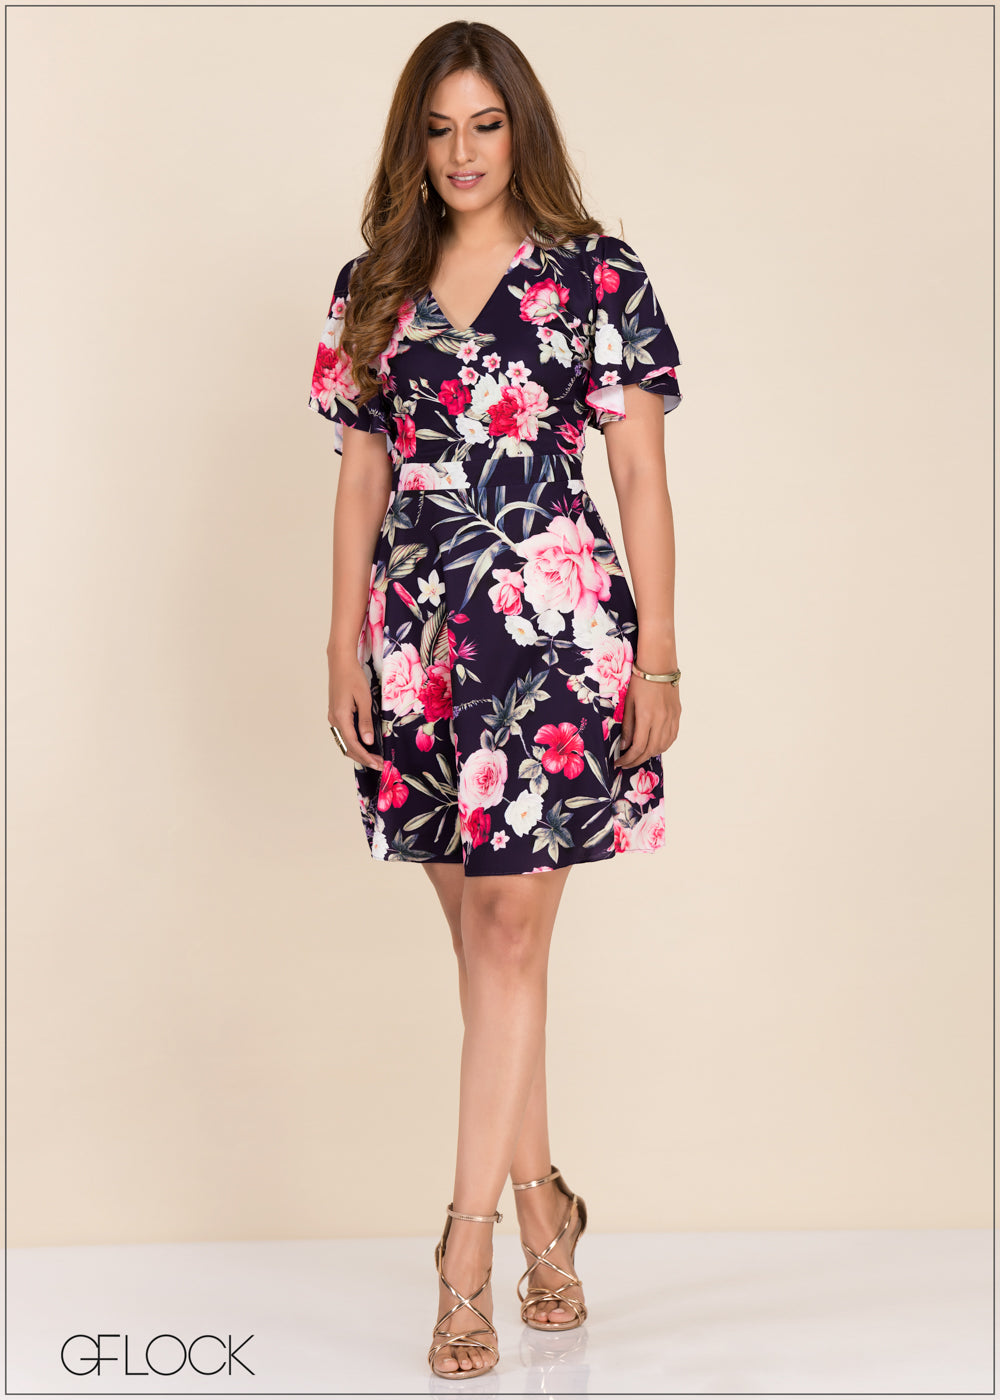 Printed Floral Dress - GFLOCK.LK